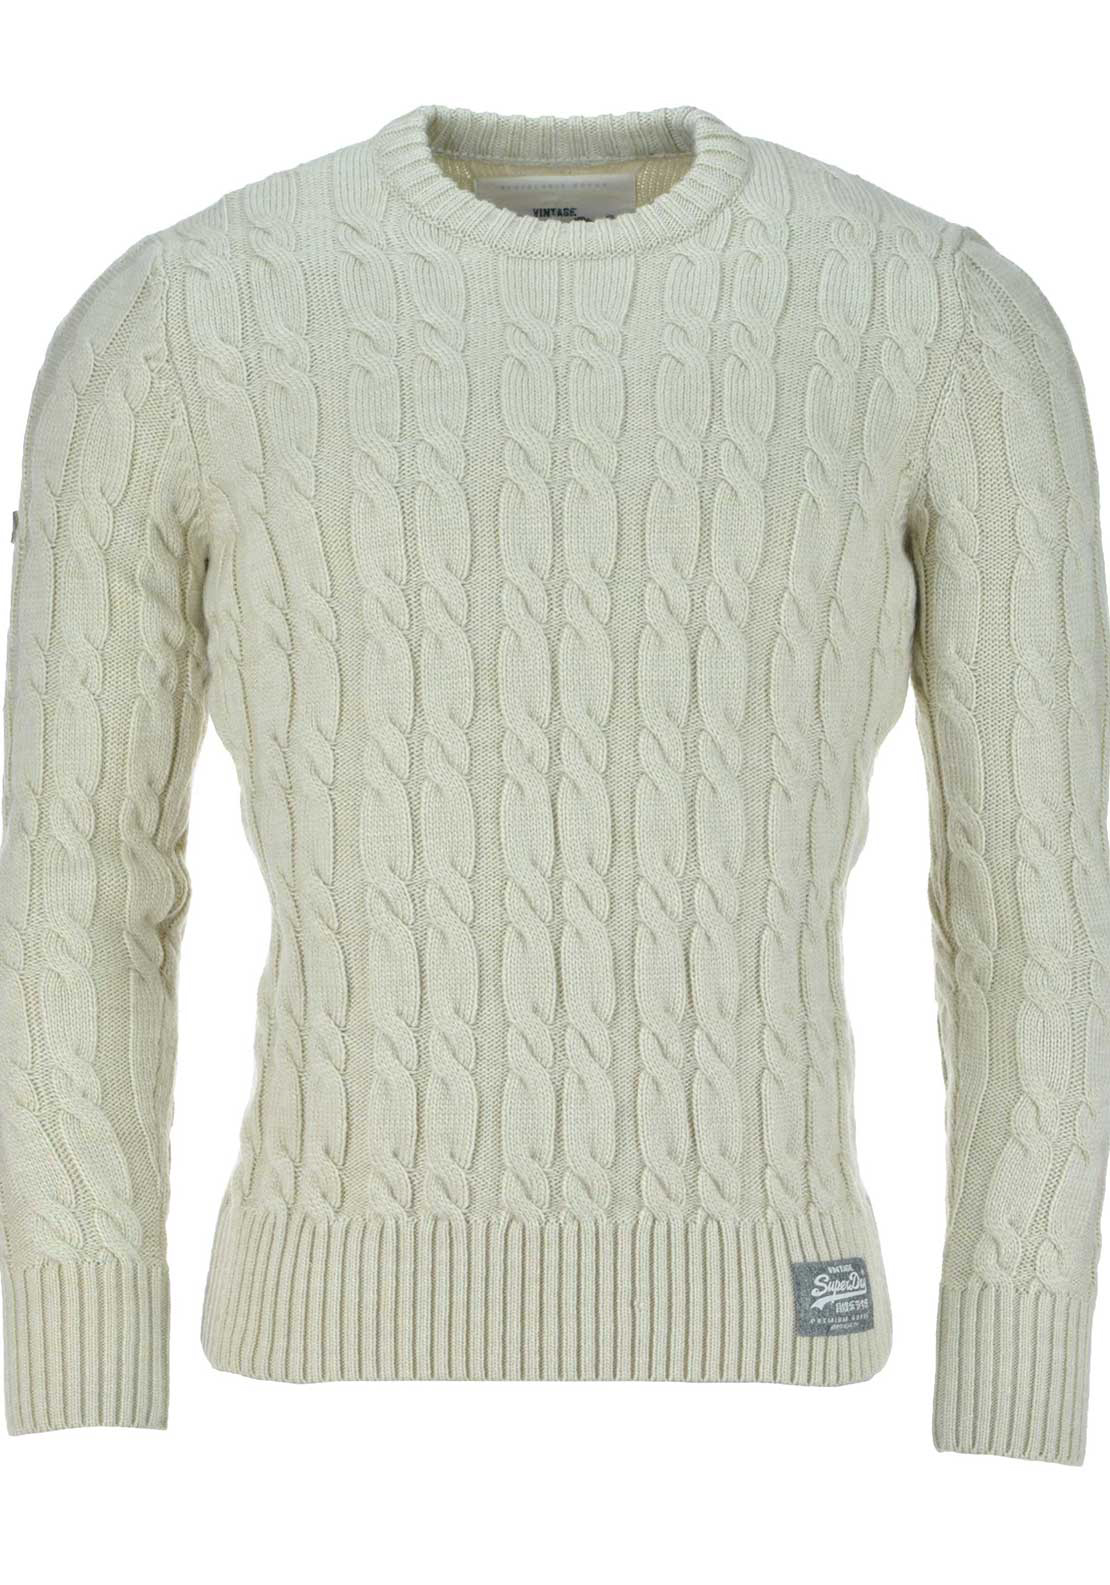 Superdry Mens Jacob Cable Knit Jumper, Cream